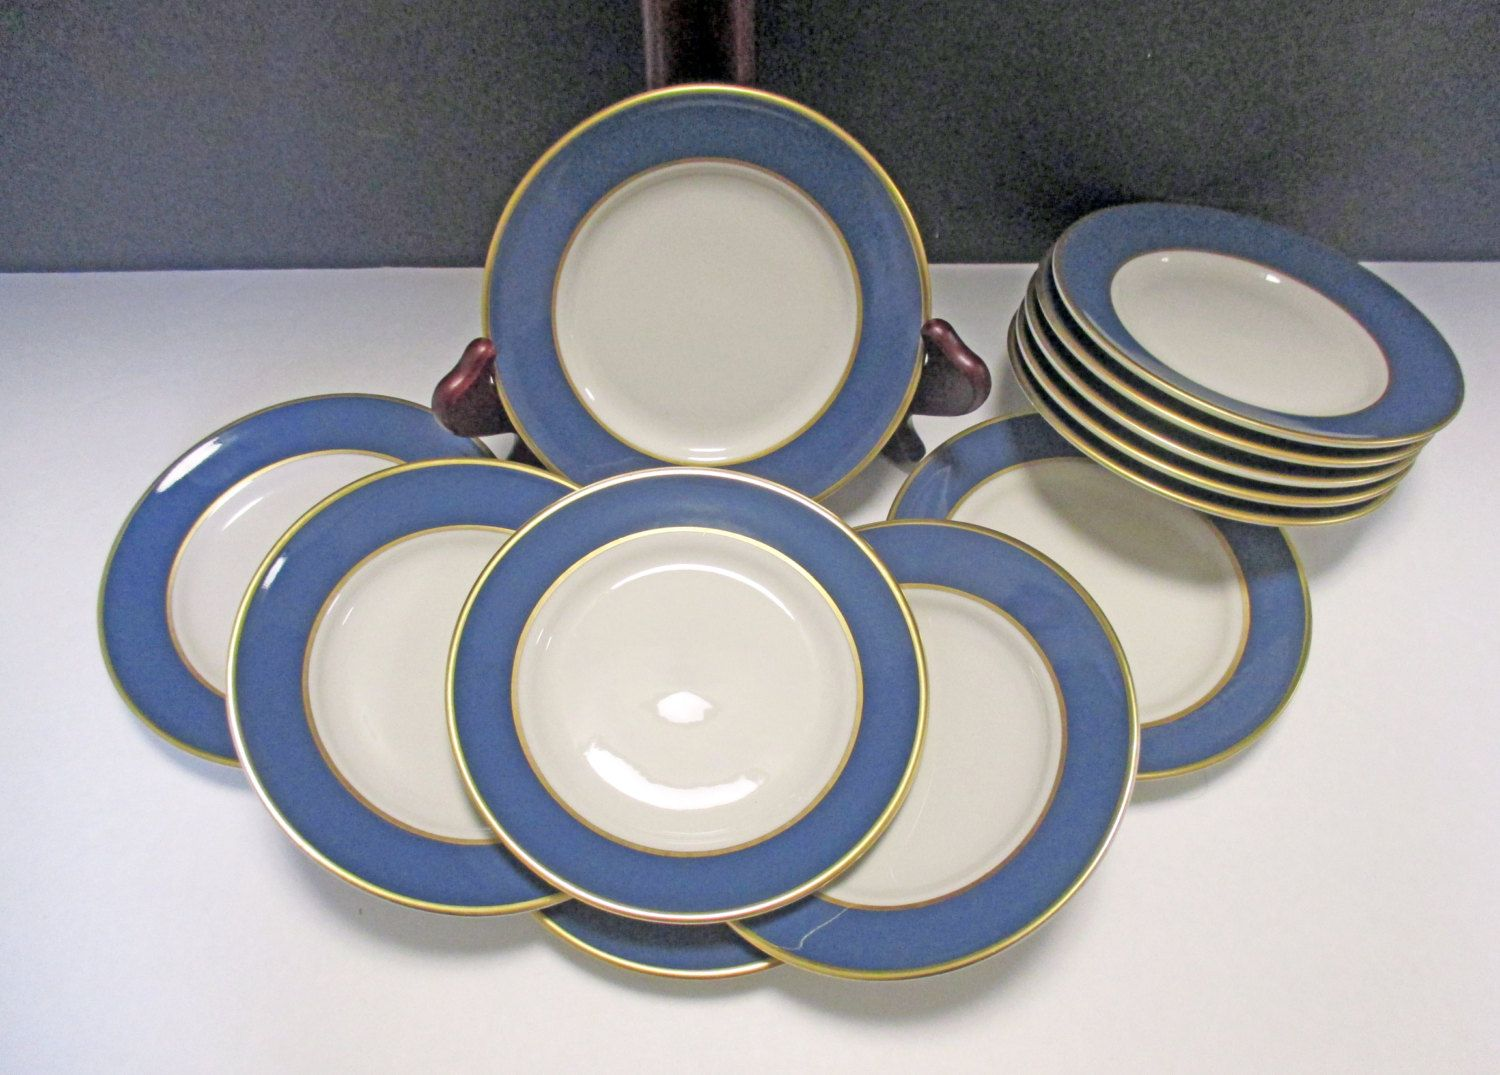 Sterling China Company Rimmed Blue Wide Band Restaurant Hotel Ware Diner Bread And Butter Plates Set Of 4 3 Sets Avail Vintage Dinnerware Plate Sets Plates